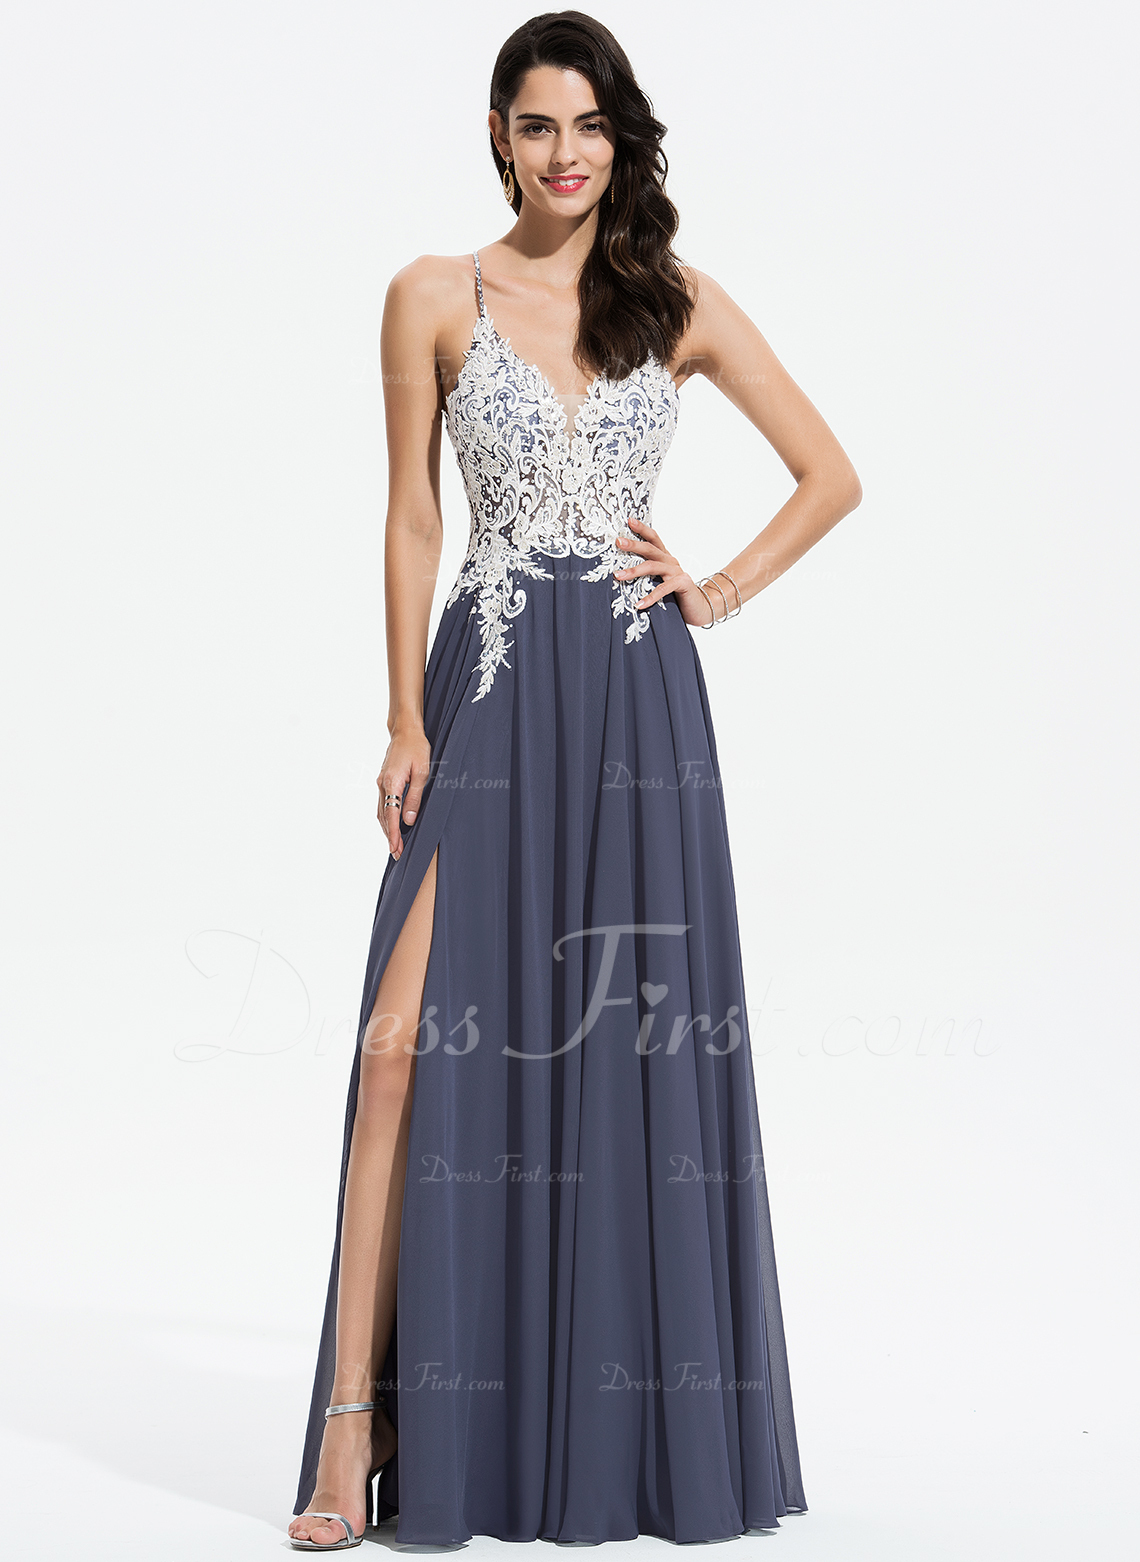 d0332d6bfcf Loading zoom. Loading. Color  Stormy. A-Line V-neck Floor-Length Chiffon  Prom Dresses With Lace Beading Sequins Split Front (018175905)